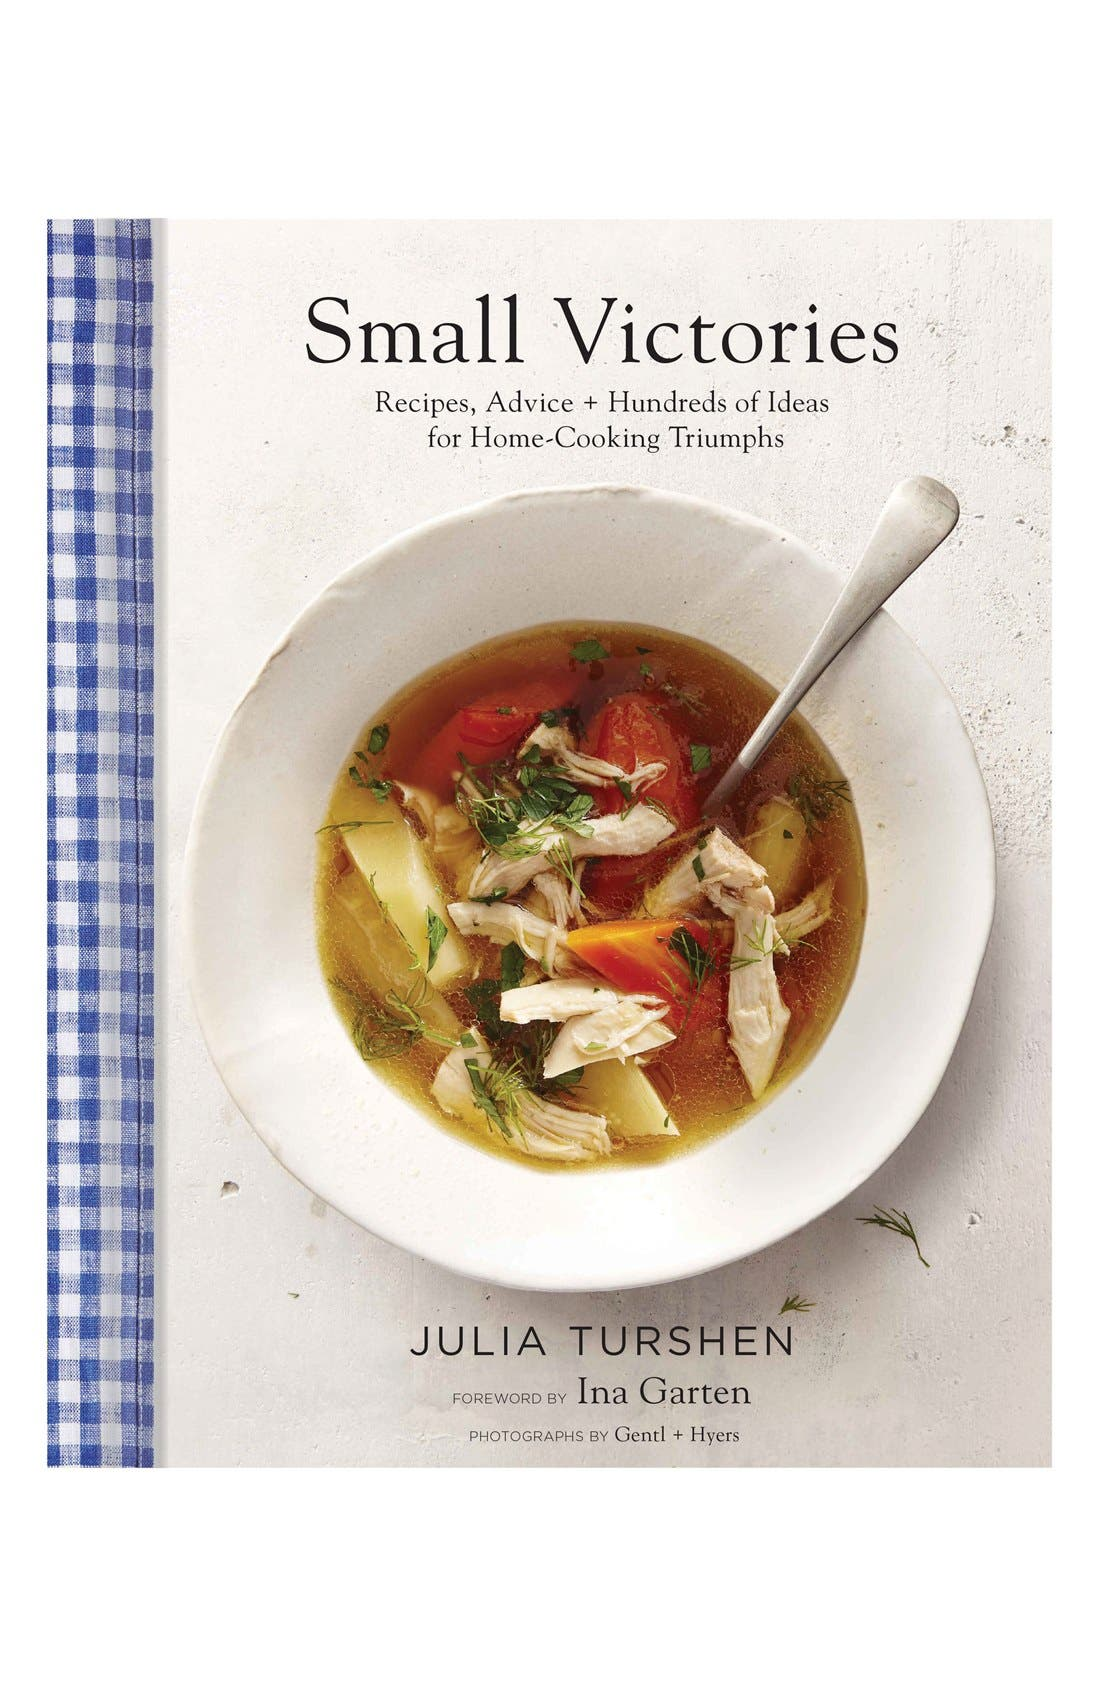 Alternate Image 1 Selected - 'Small Victories - Recipes, Advice + Hundreds of Ideas for Home Cooking Triumphs' Cookbook